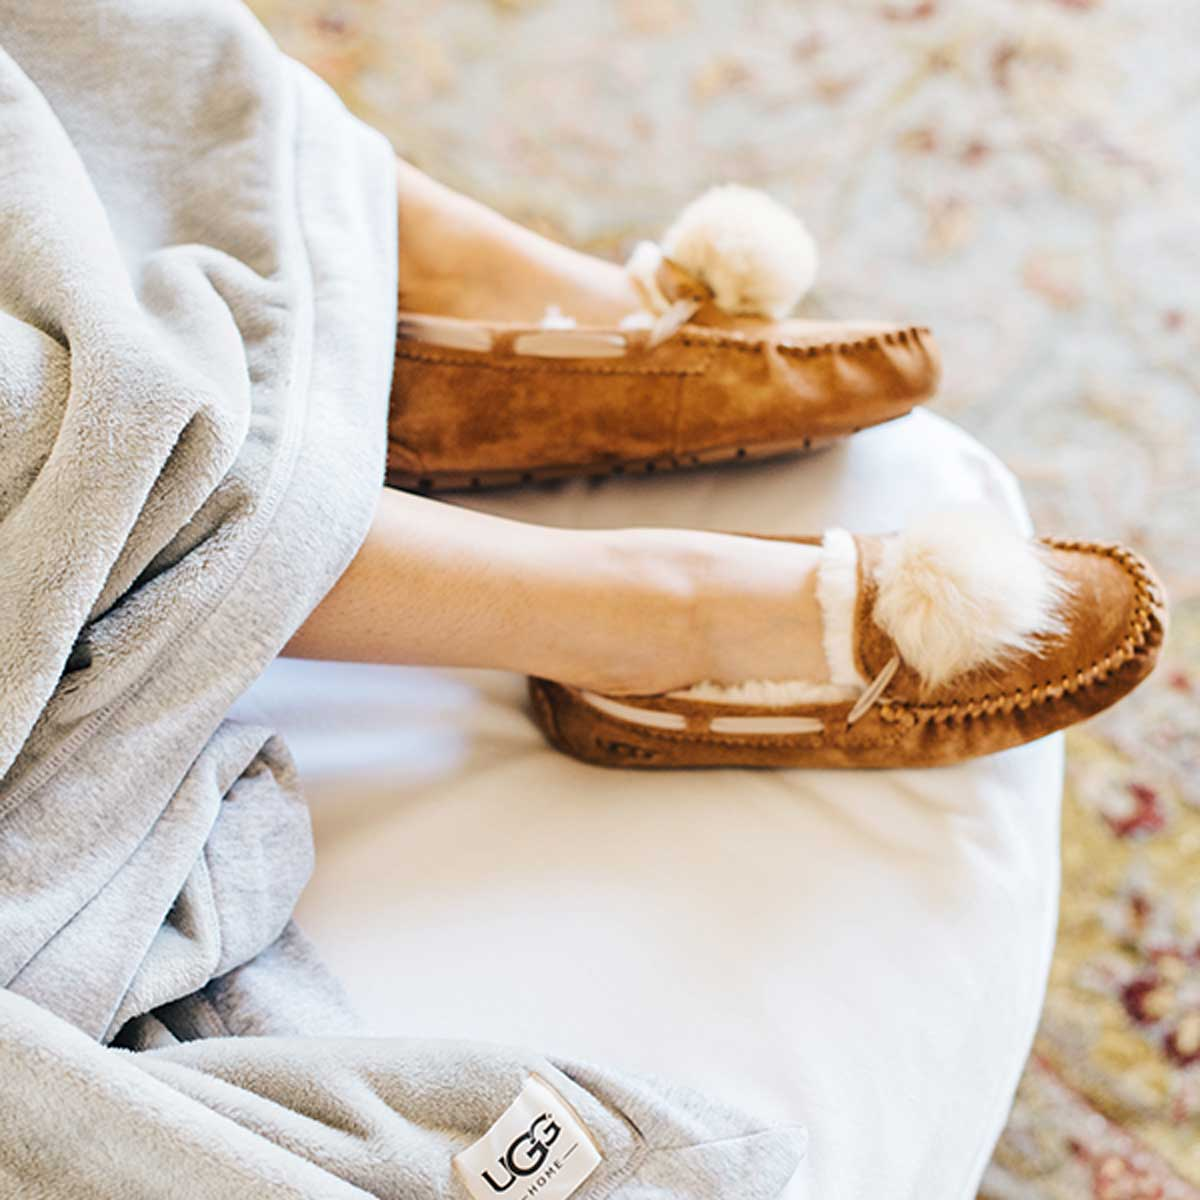 25a2138bdf1f3 UGG Australia: The softest pom pom slippers | Milled